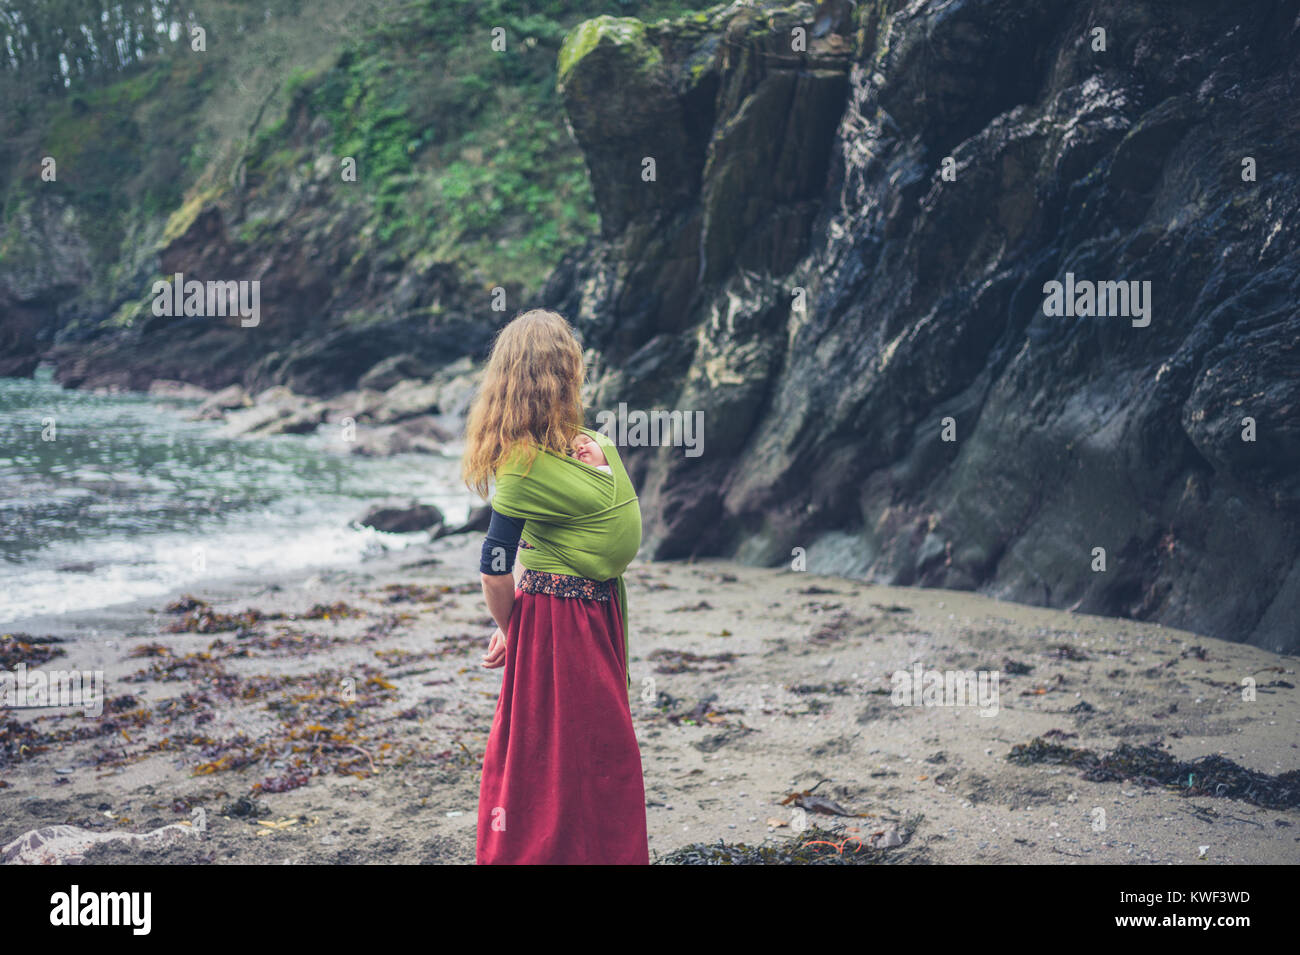 A young mother is on the beach with her baby in a sling - Stock Image